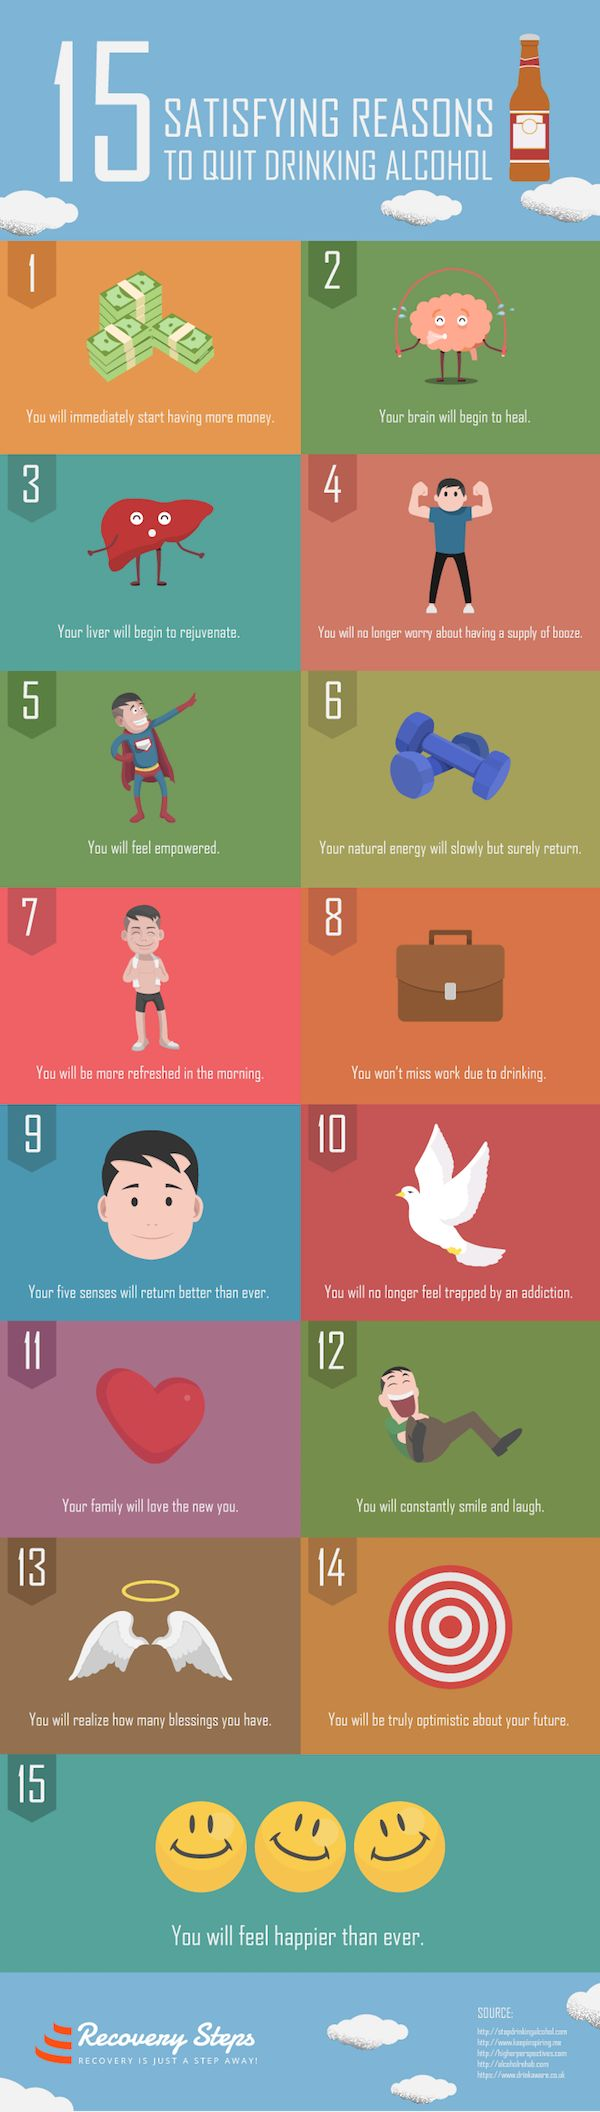 Infographic: 15 Satisfying Reasons To Quit Drinking Alcohol - DesignTAXI.com